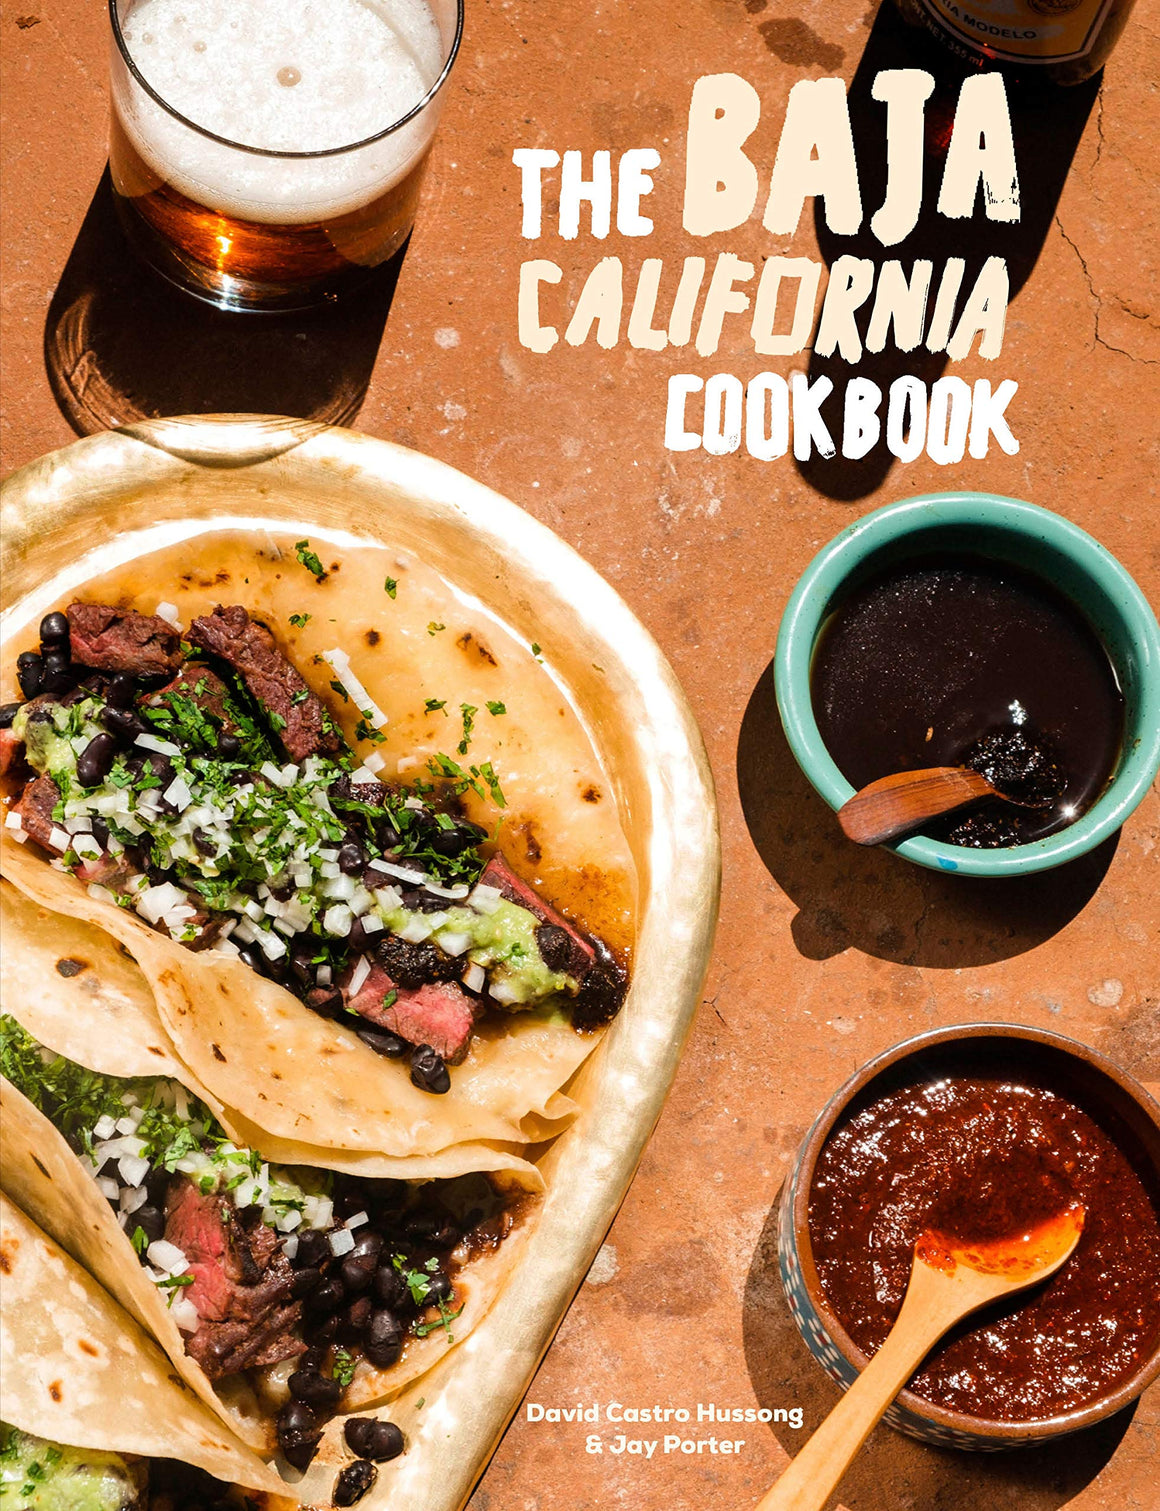 David Castro Hussong and Jay Porter. The Baja California Cookbook: Exploring the Good Life in Mexico.